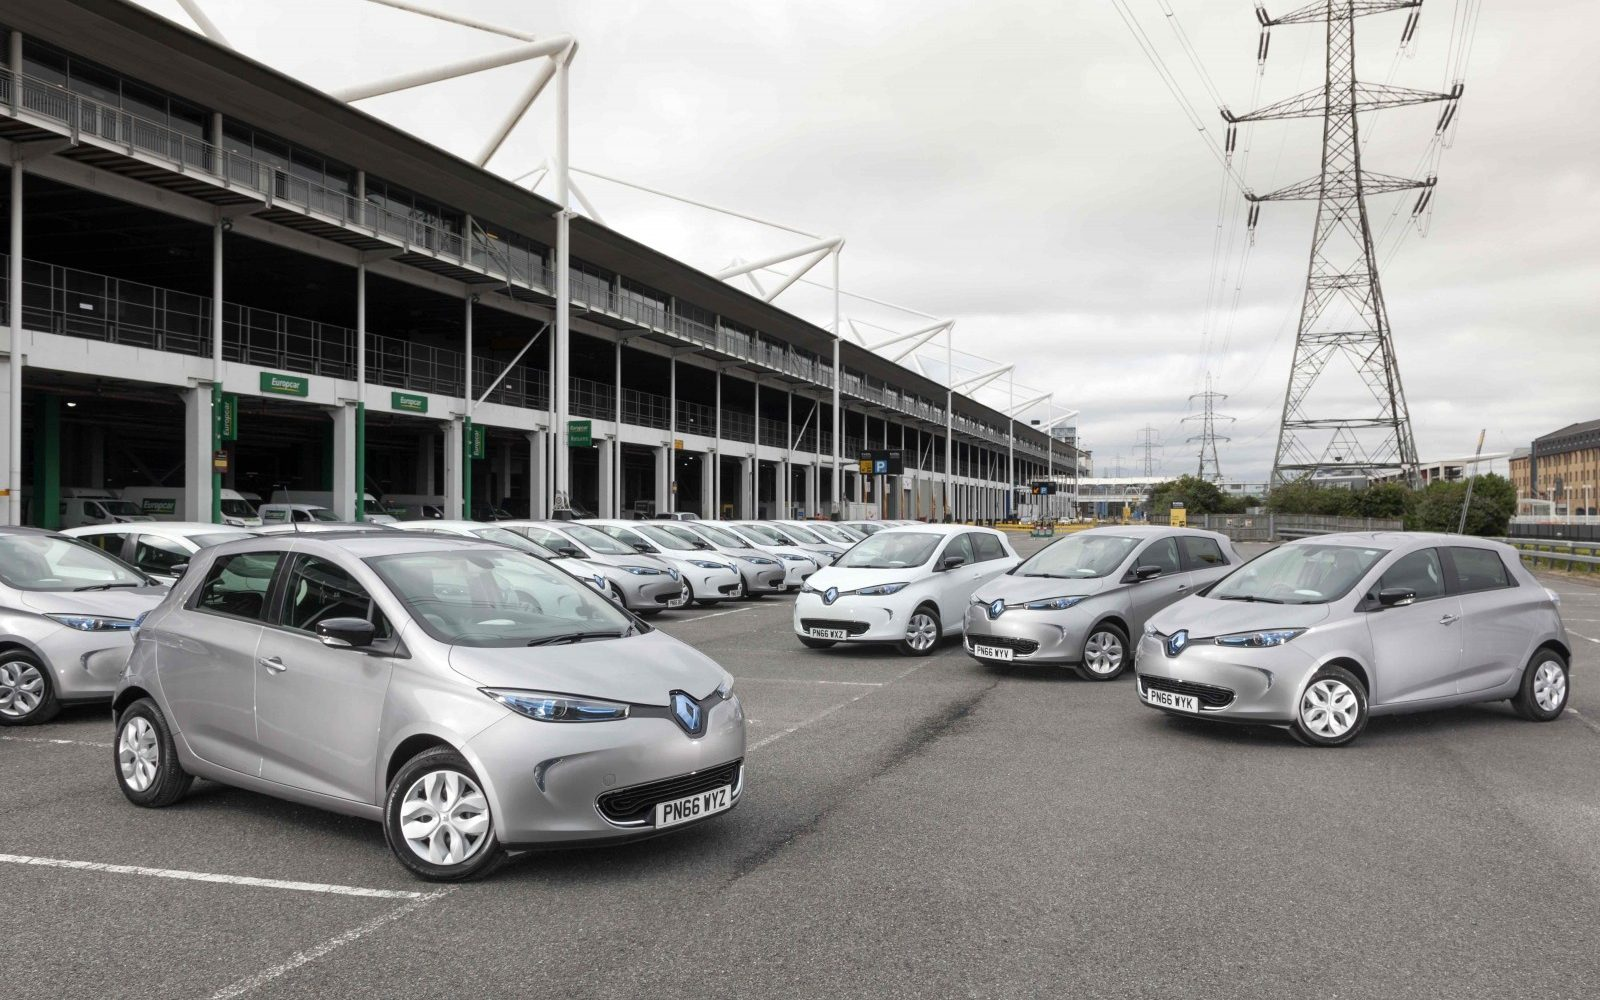 Europcar Adds 55 Electric Cars To Delivery And Collect Service